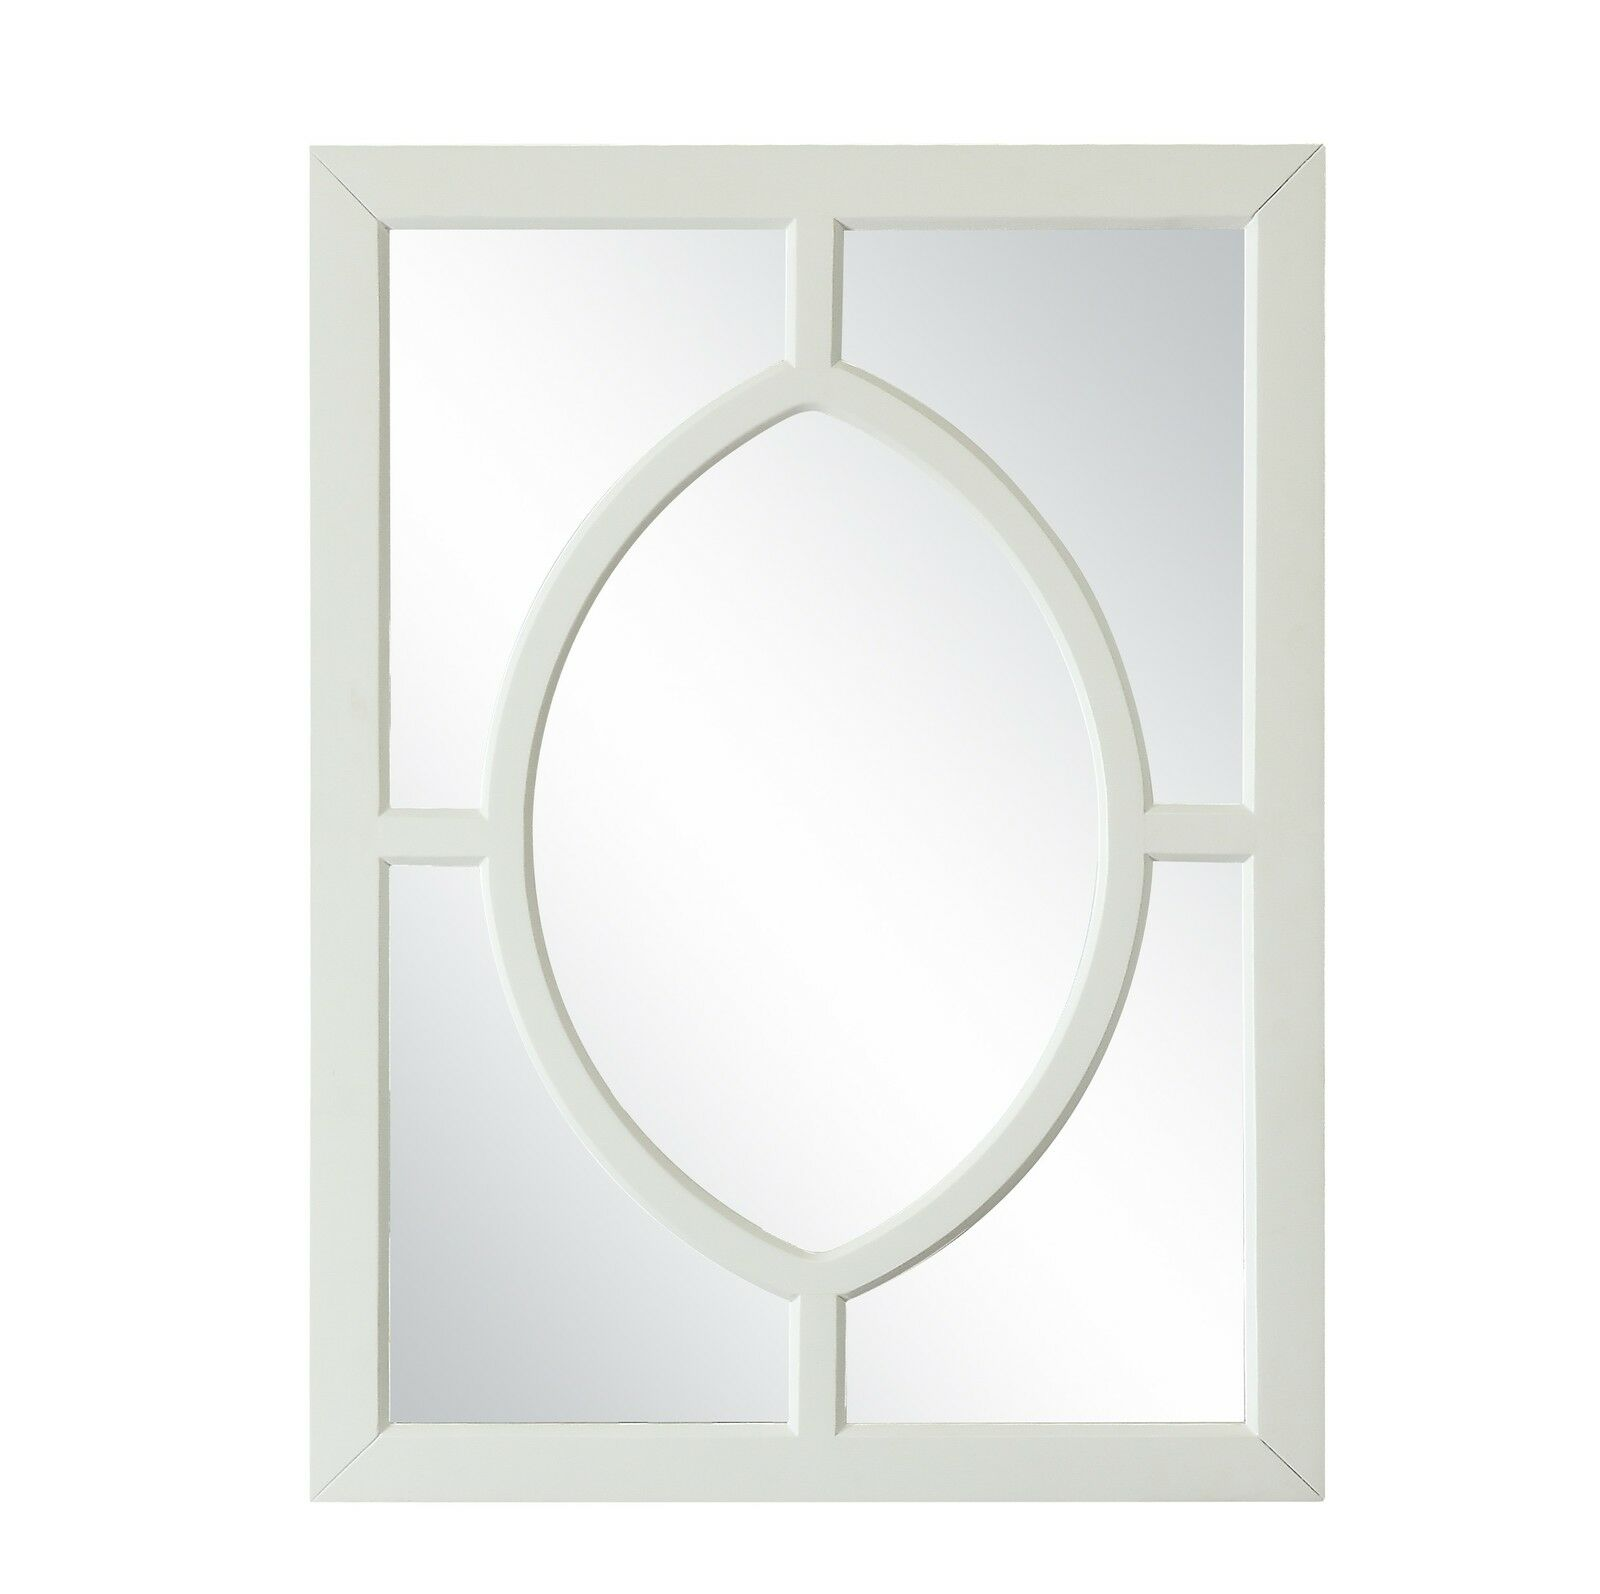 40  T Wall Mirror  Weiß Marble Plywood 5mm With 3 4 Bevel Mirror 0 2